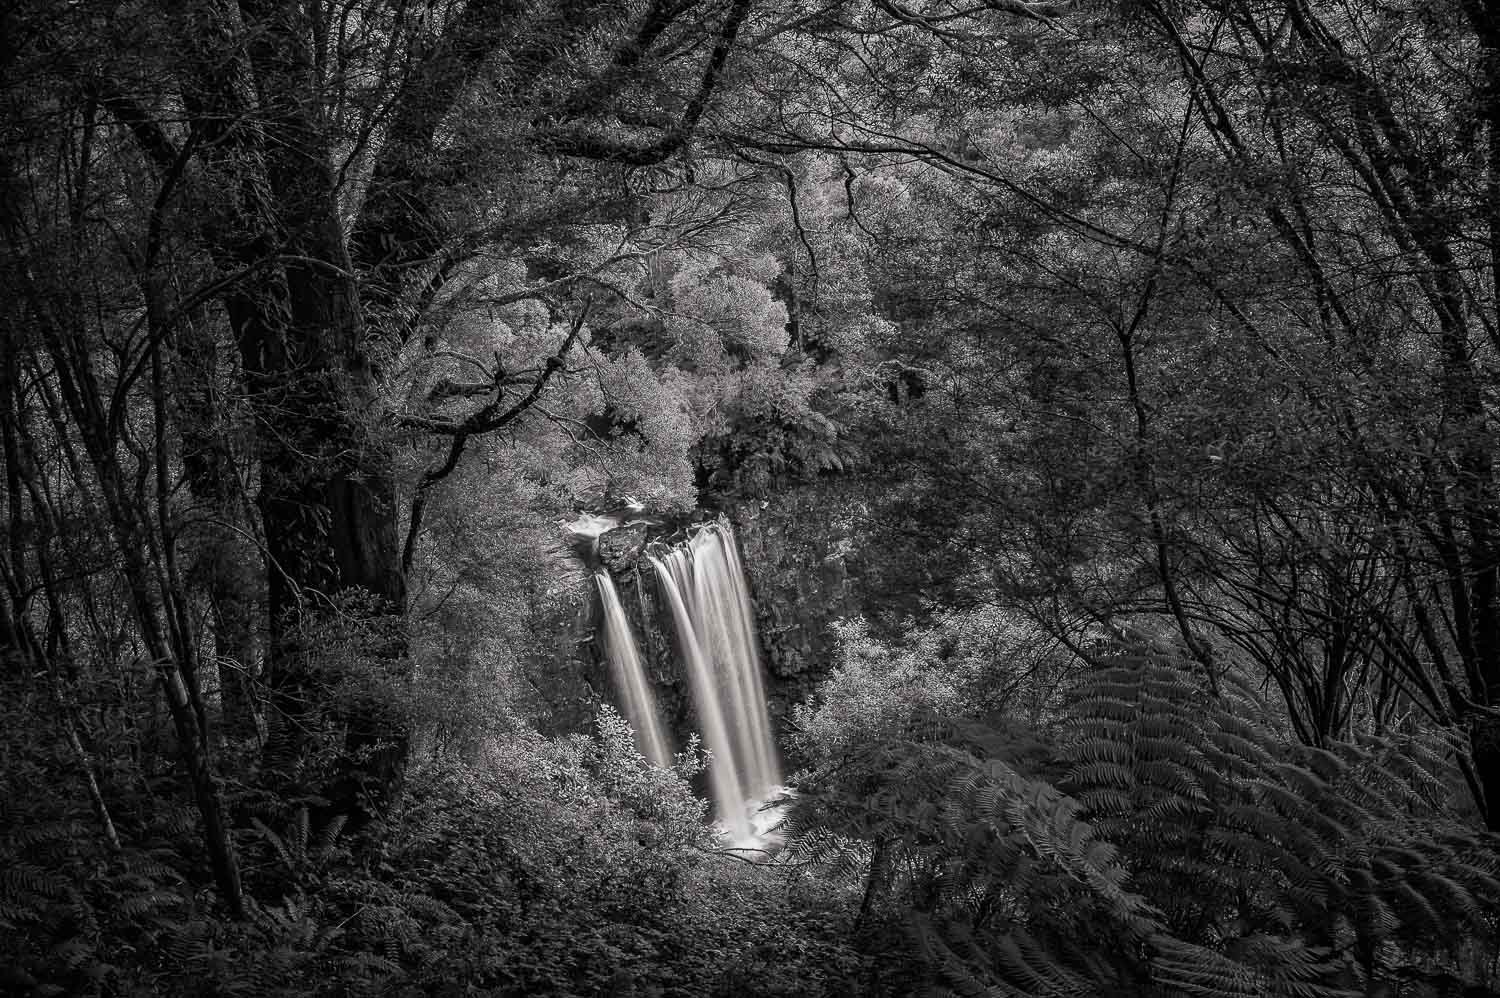 Lookout, Erskine Falls, Great Otway National Park   Leica M9 camera and Leica Summicron 35mm  f 2 lens.